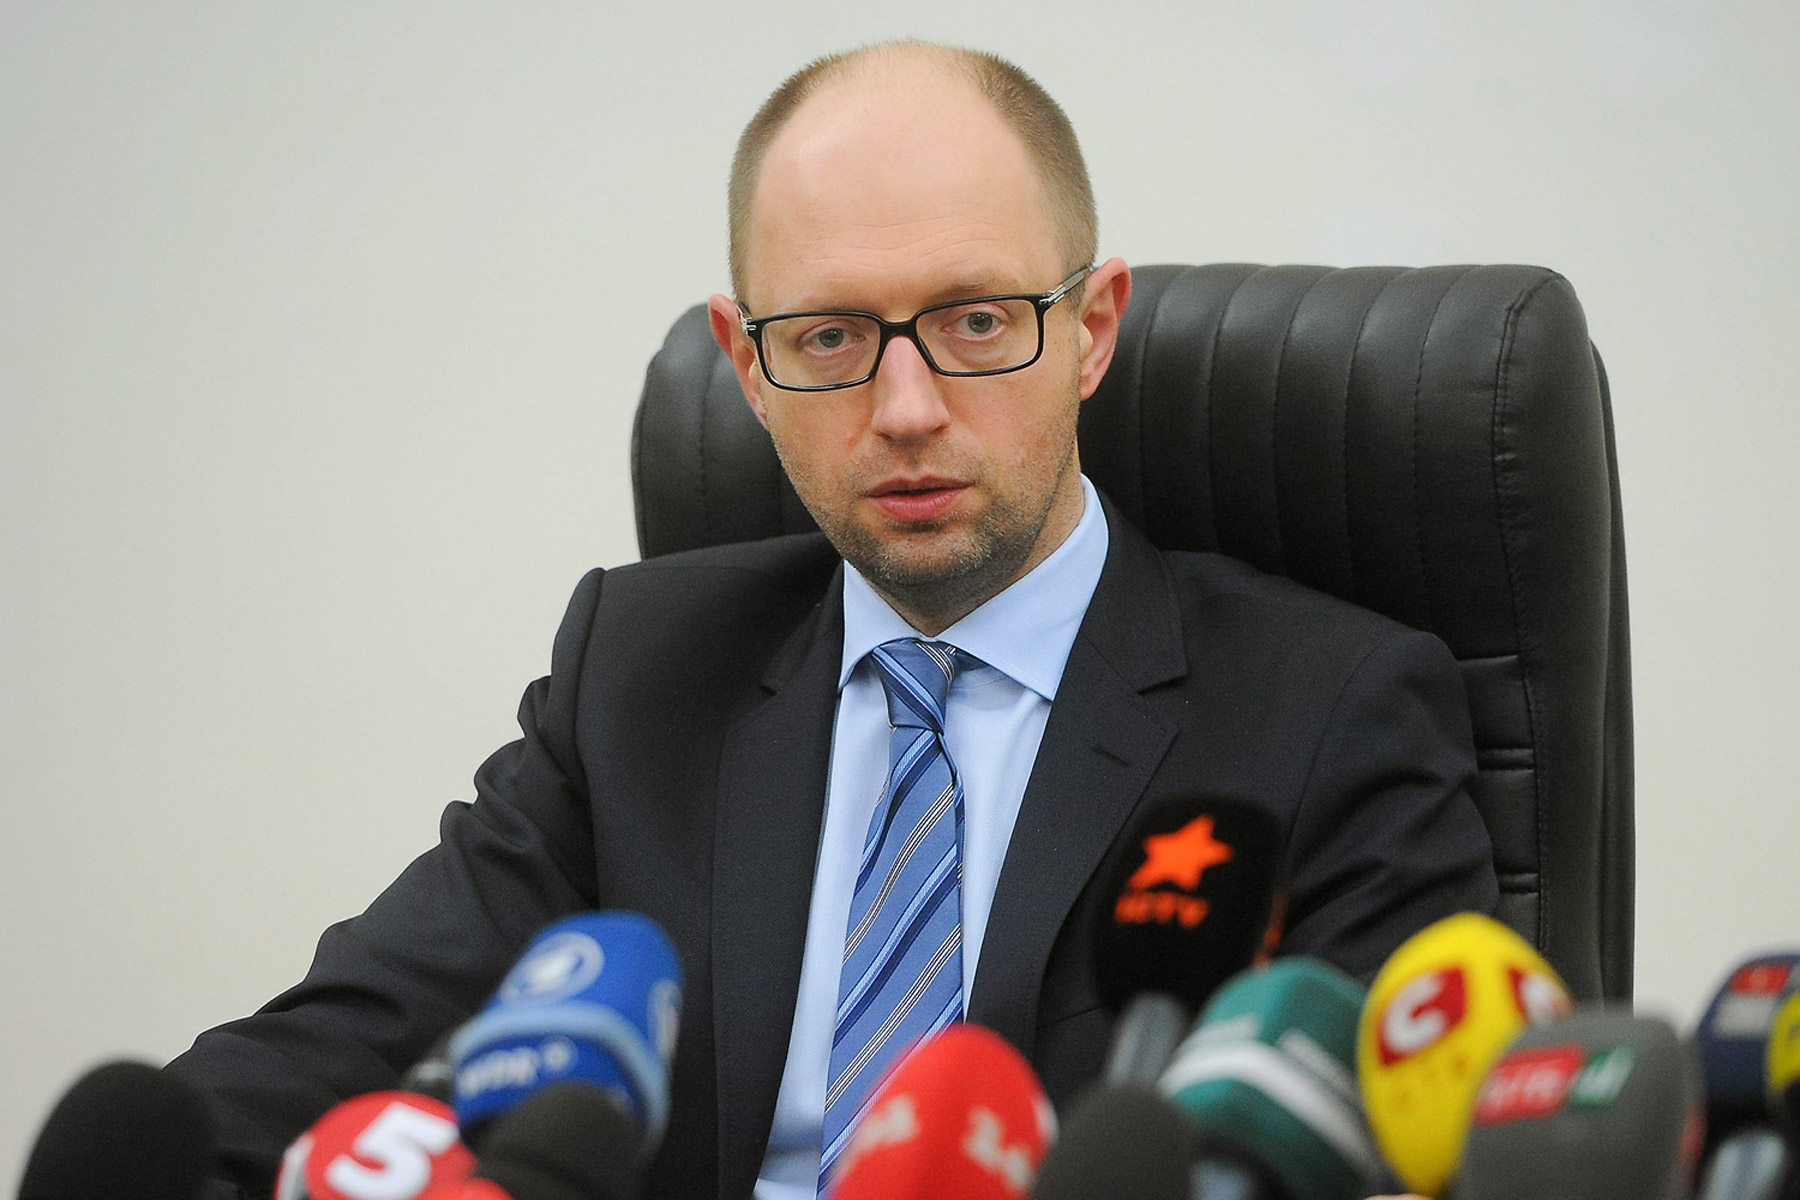 Ukrainian Prime Minister Arseniy Yatsenyuk speaks during a press conference held at the Defense Ministry headquarters in Kiev, Ukraine, on March 18, 2014